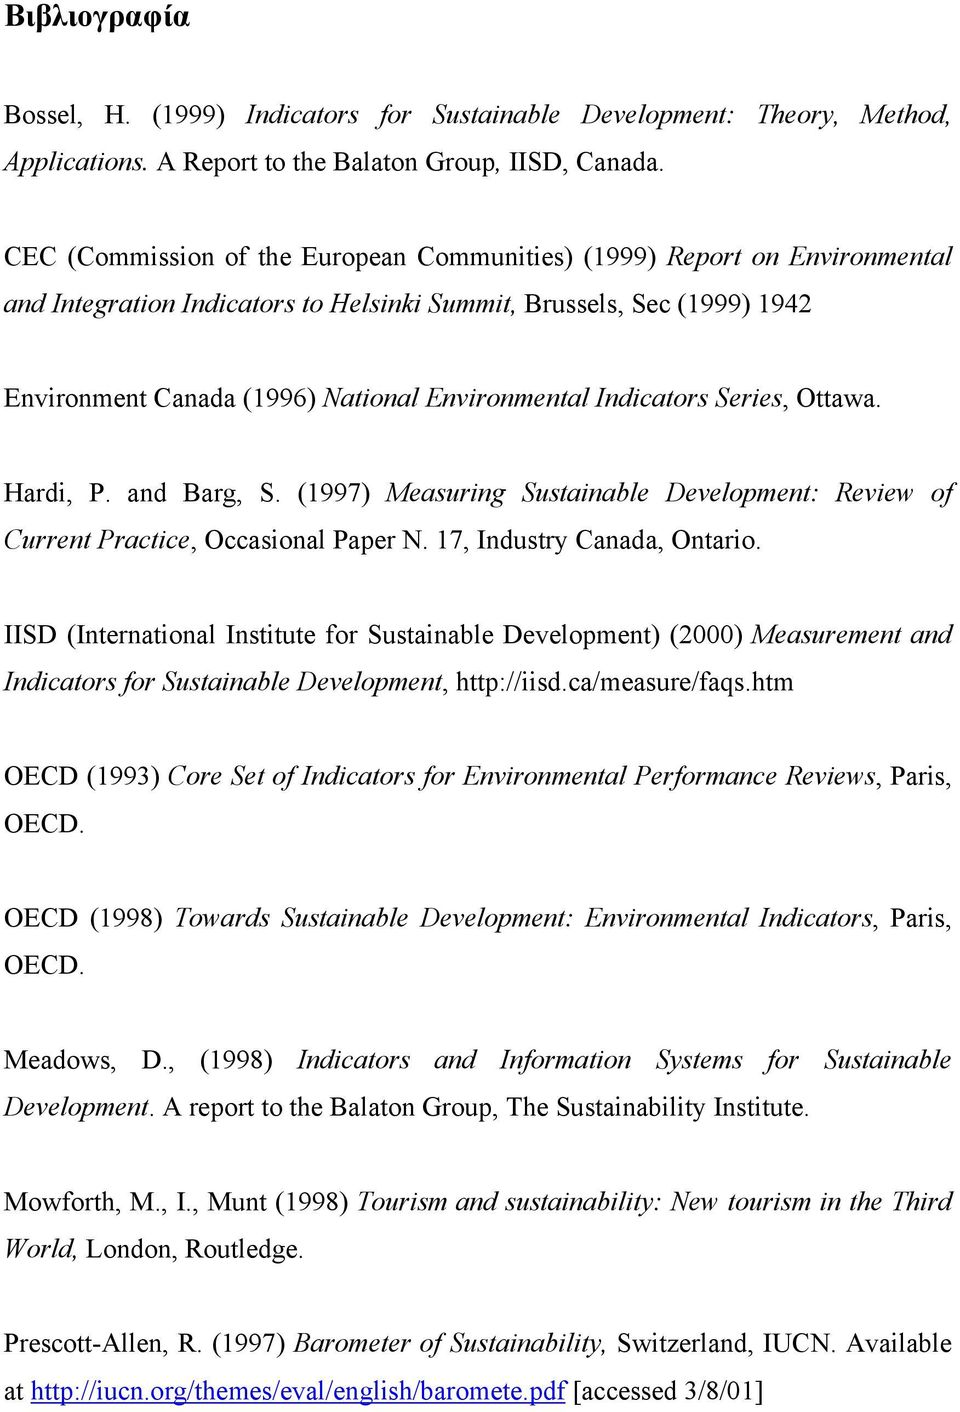 Indicators Series, Ottawa. Hardi, P. and Barg, S. (1997) Measuring Sustainable Development: Review of Current Practice, Occasional Paper N. 17, Industry Canada, Ontario.